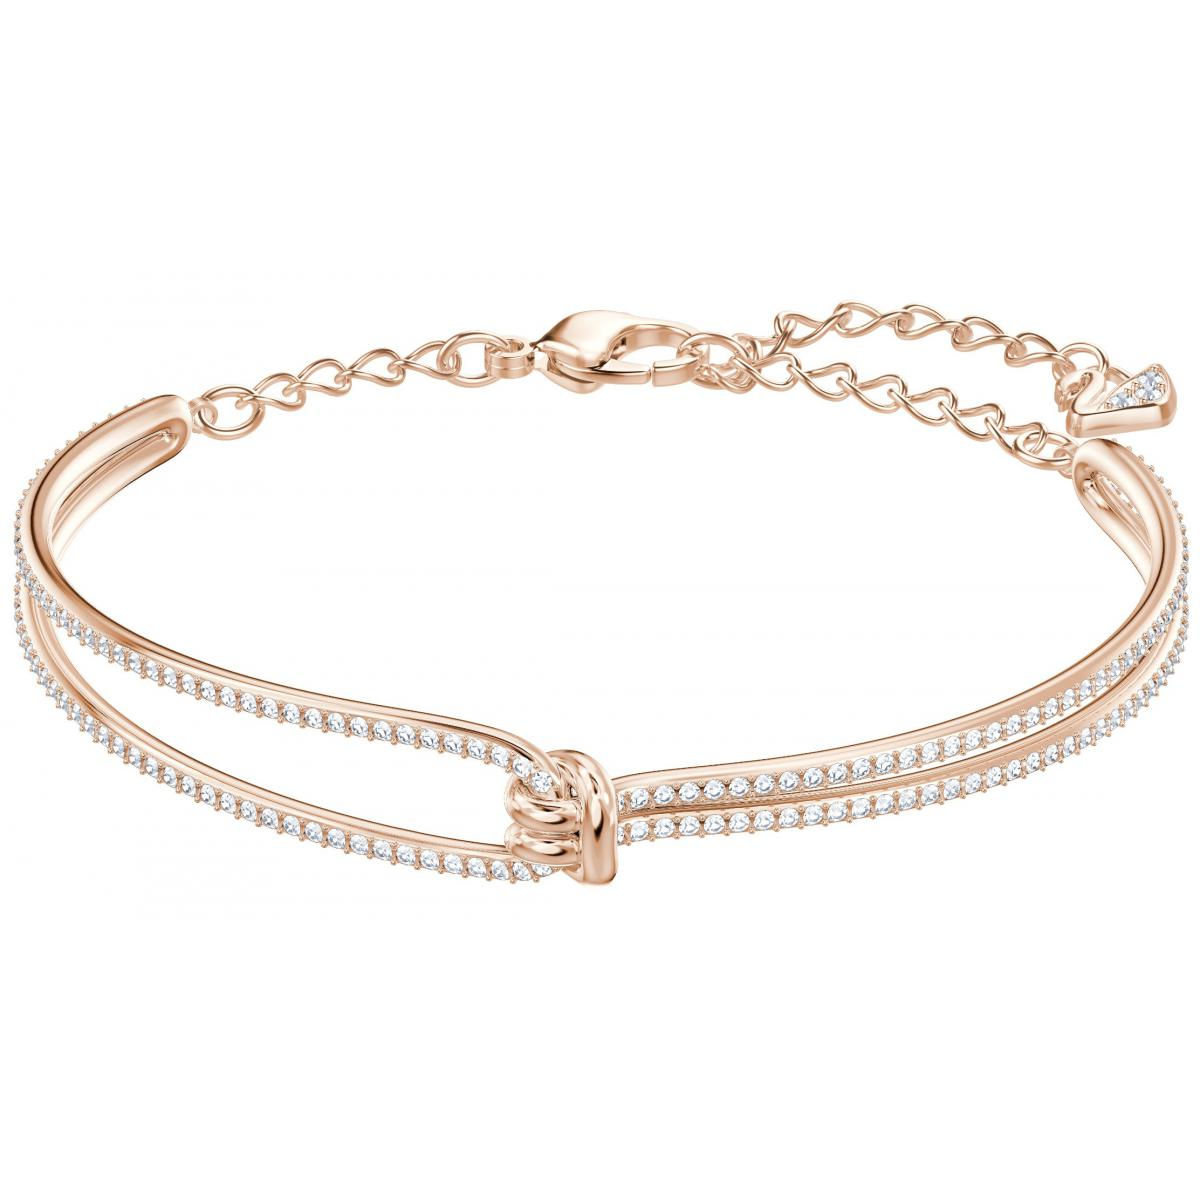 Bracelet Swarovski Lifelong Bangle - Bracelet Acier Or Rose Femme